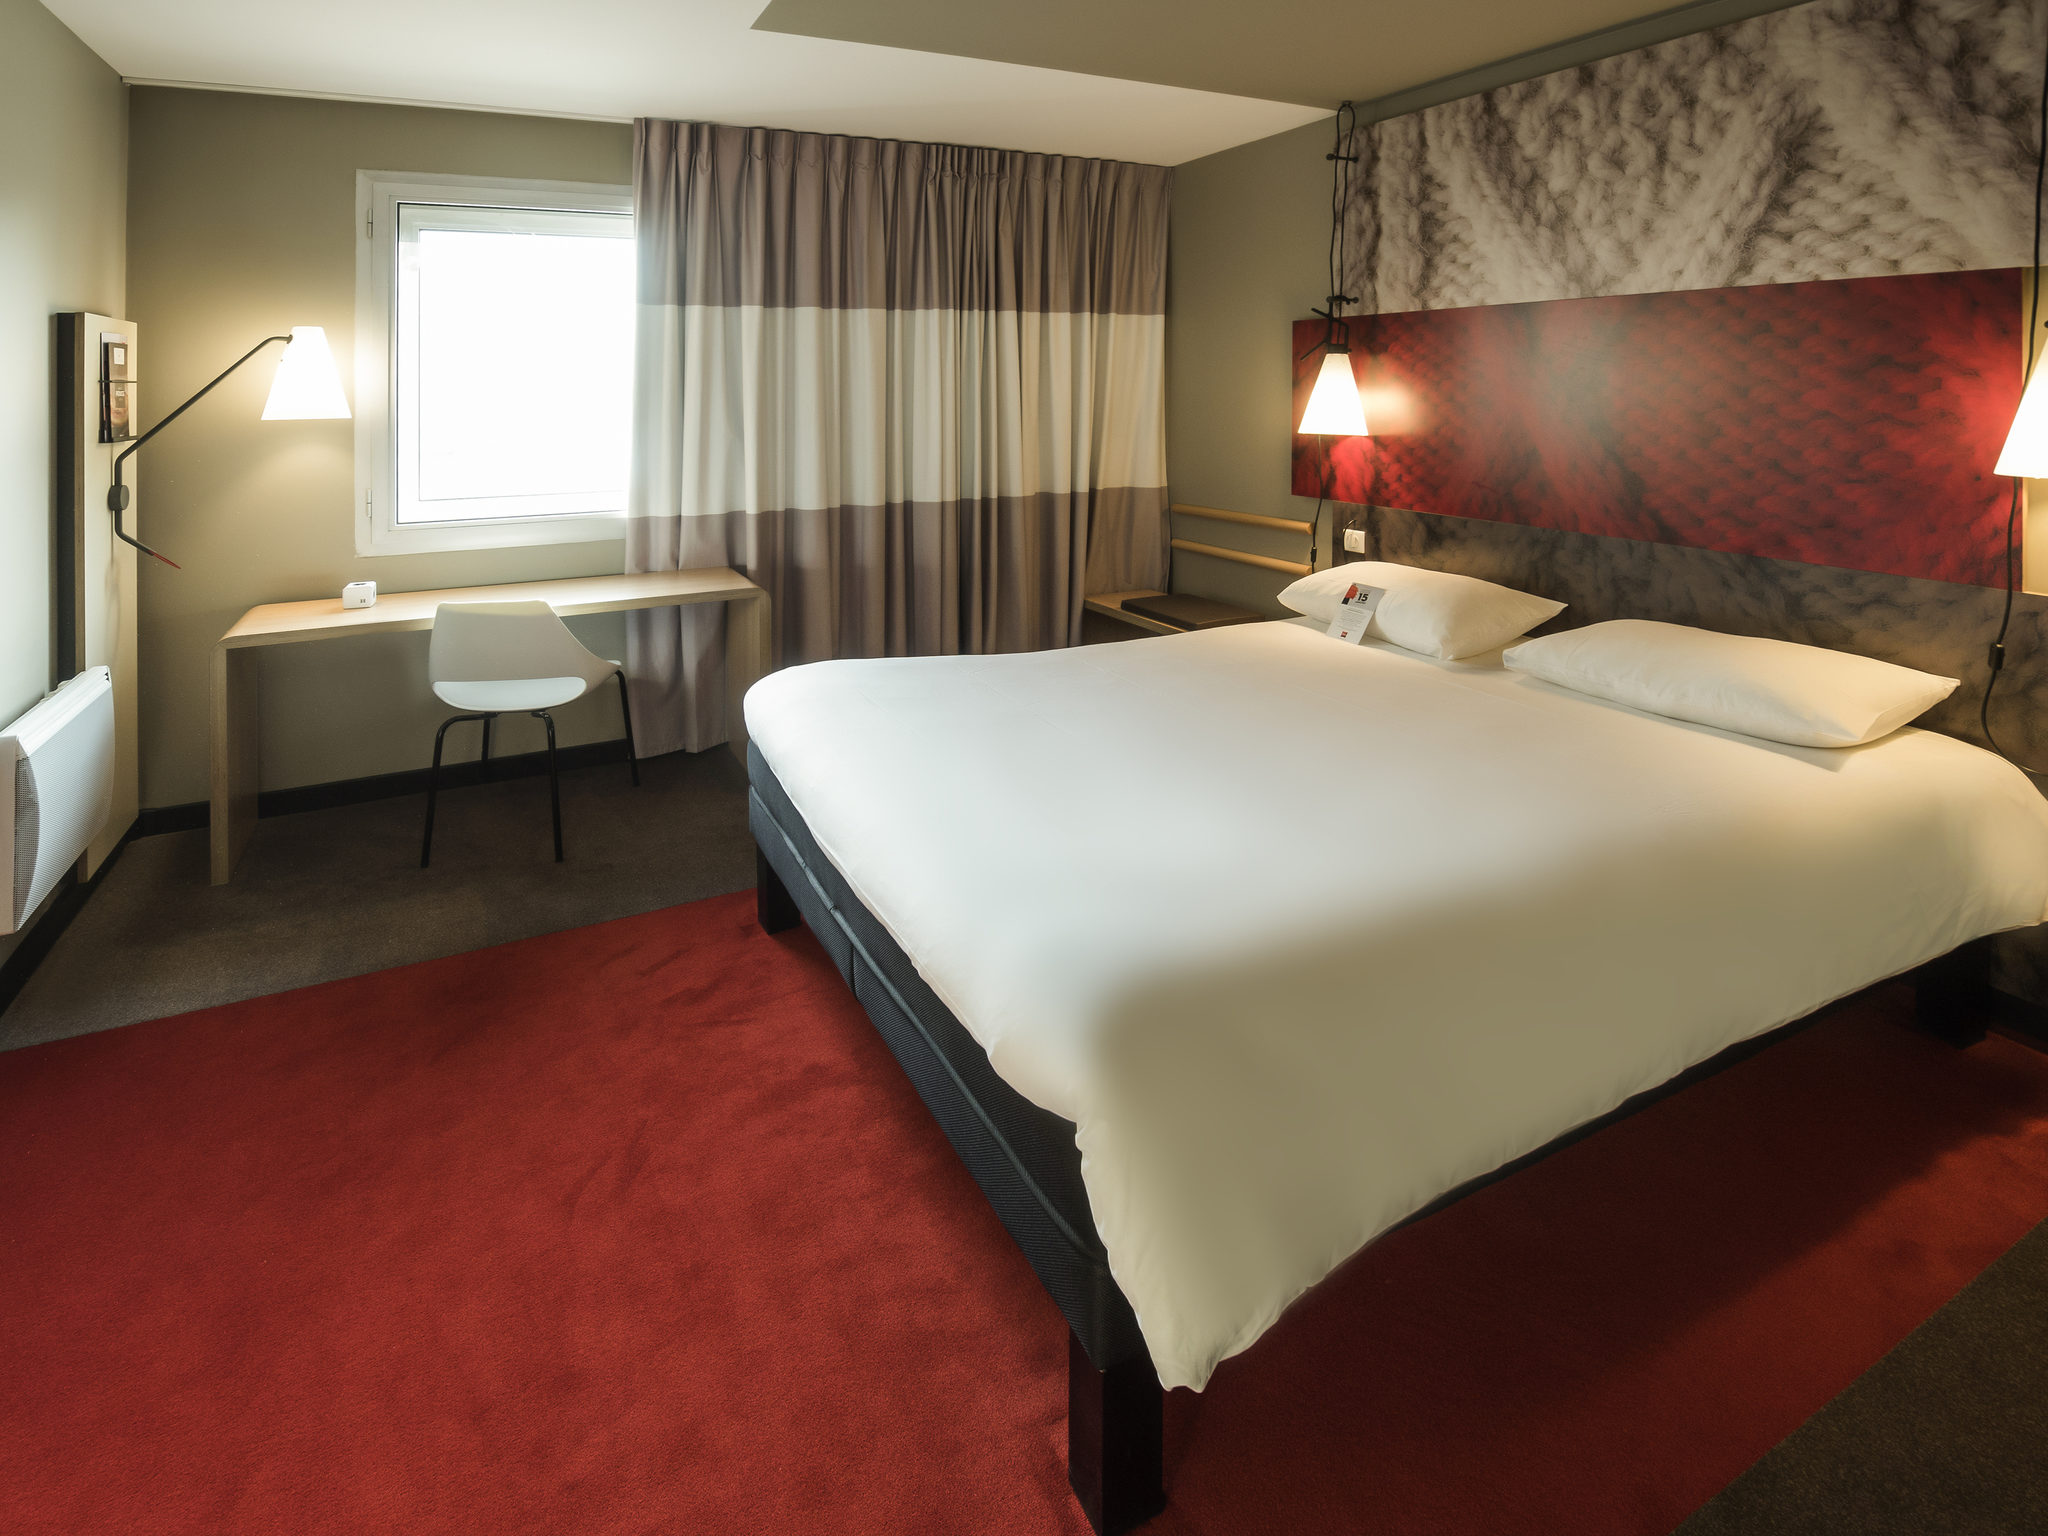 hotel in rouen ibis rouen champ de mars. Black Bedroom Furniture Sets. Home Design Ideas